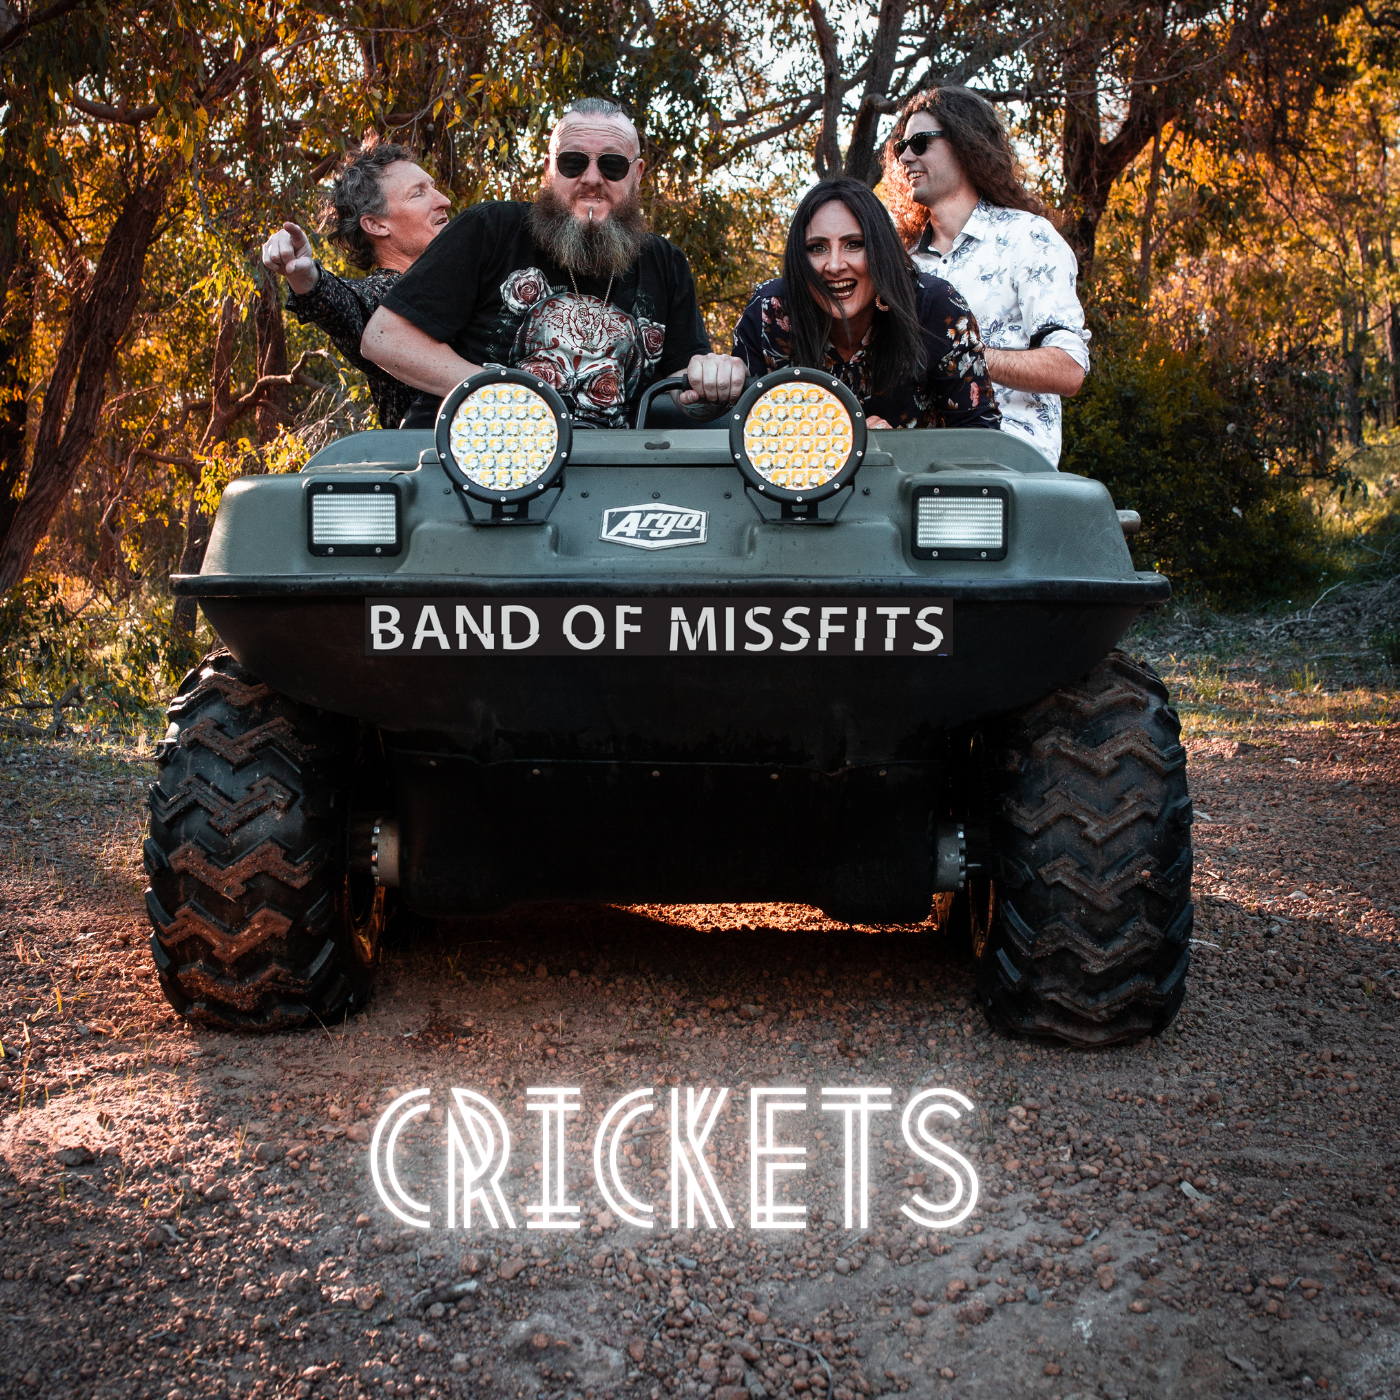 CRICKETS cover art 1.0